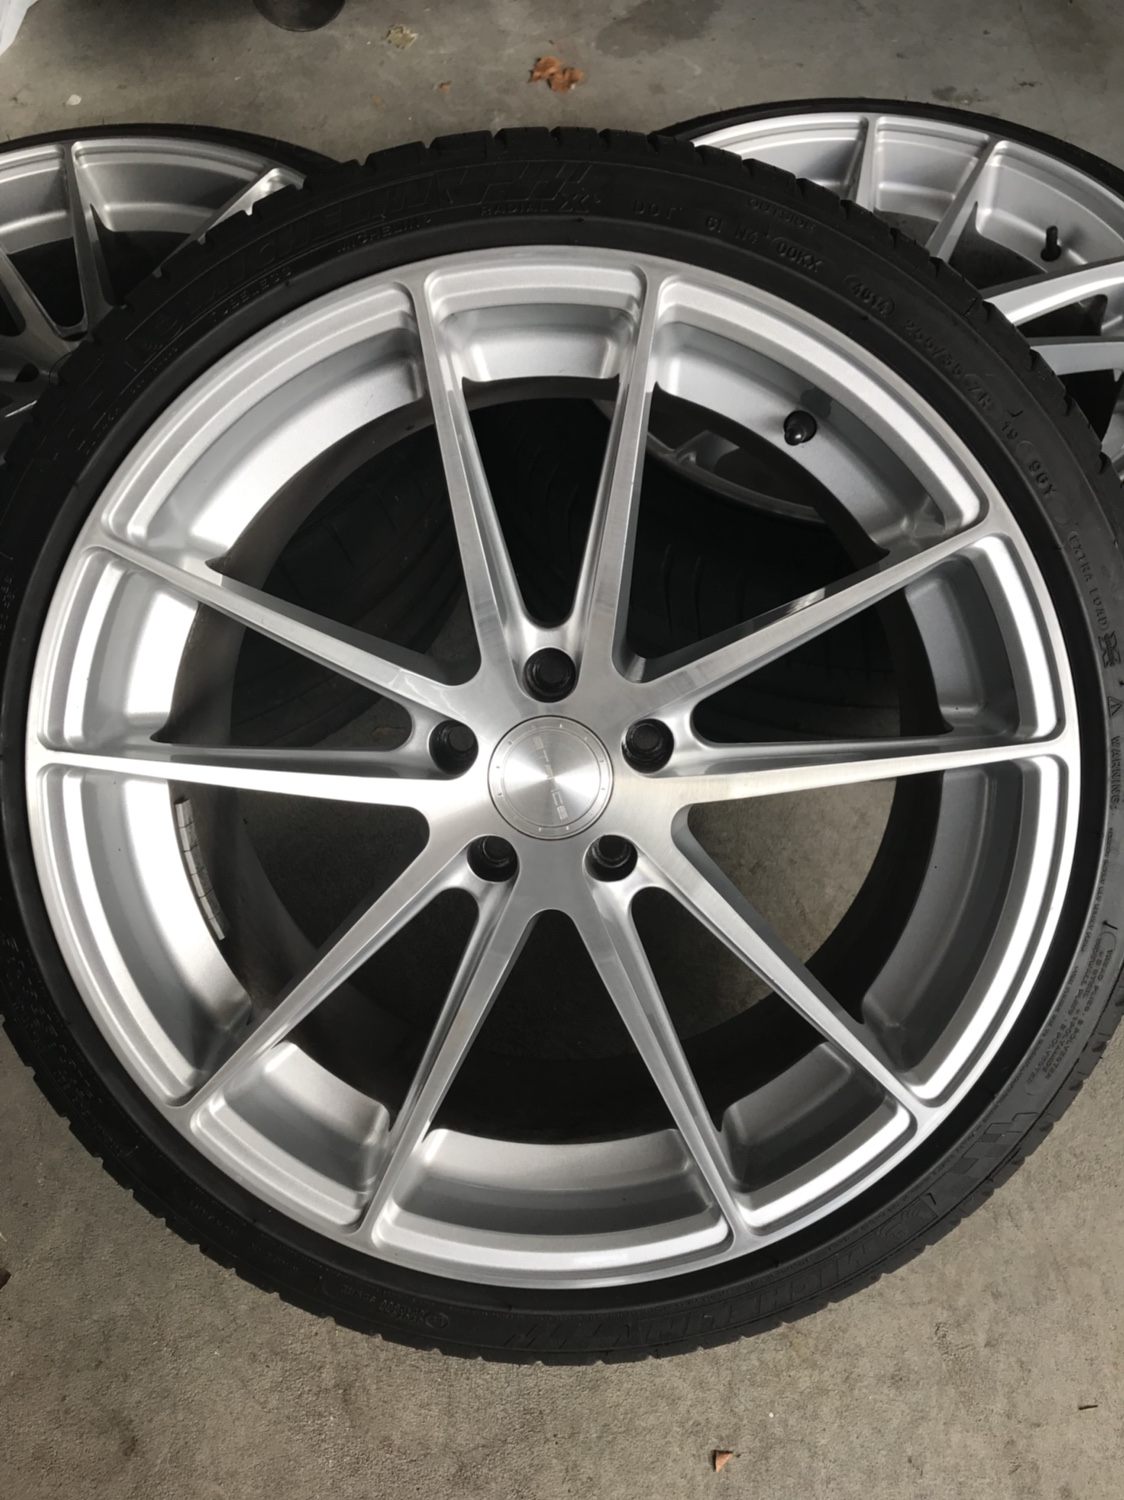 2017 Vw Gli >> For Sale: Stance SC1 19x9.5 ET35 Wheels with tires